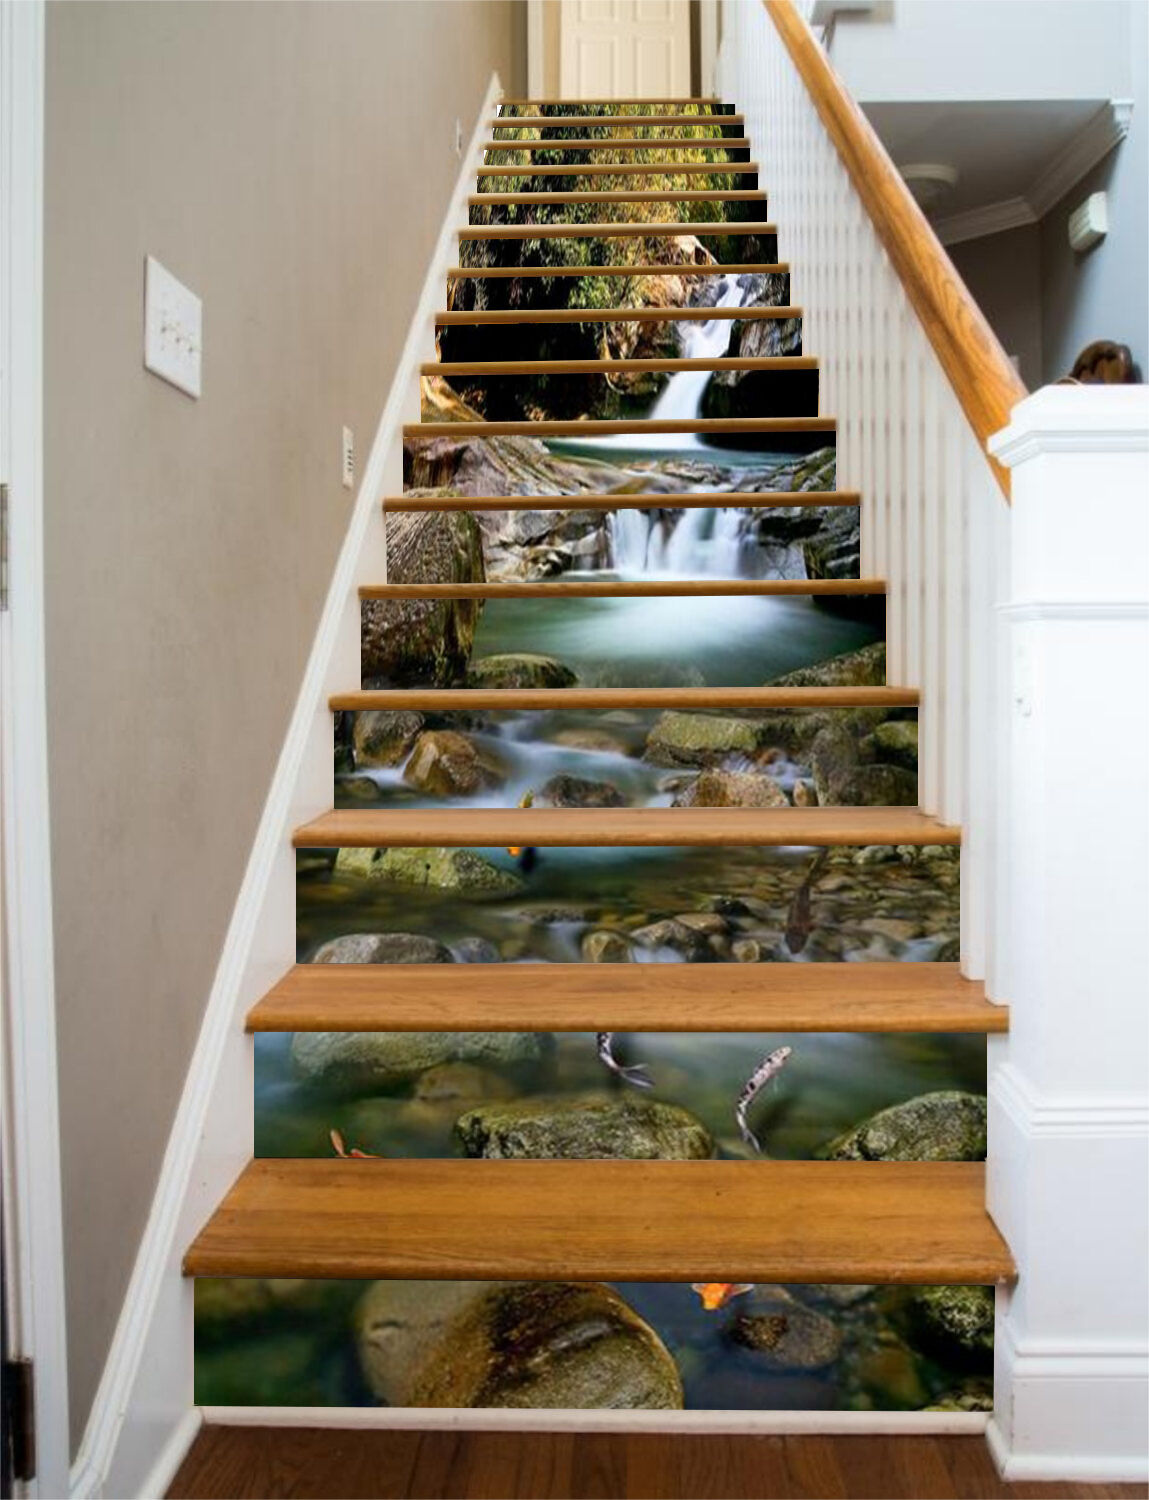 3D Creek Fishes 266 Stair Risers Decoration Photo Mural Vinyl Decal Wallpaper AU